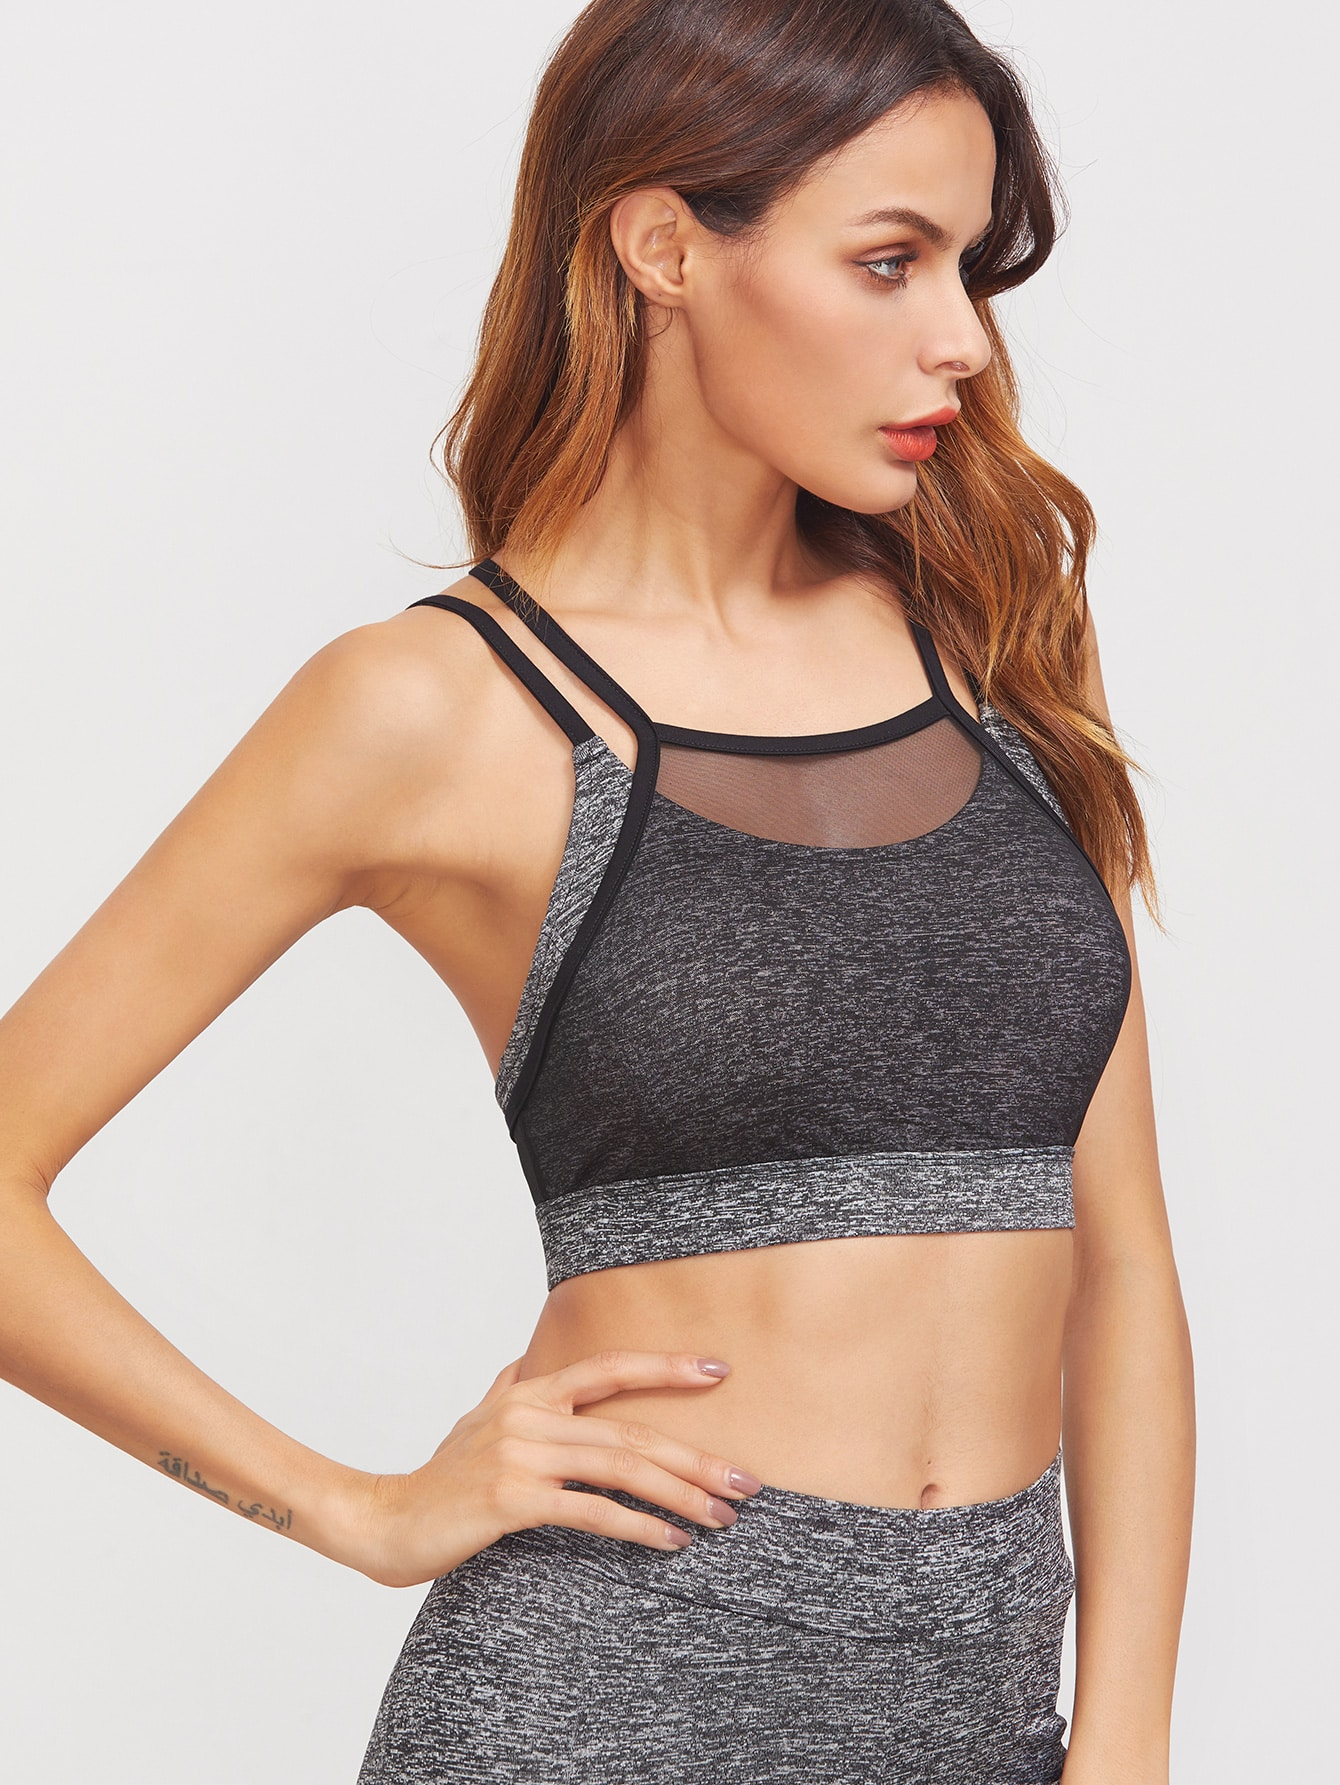 00b53875d02db Grey Marled Knit Contrast Mesh Overlay Crisscross Back Sports Bra pictures